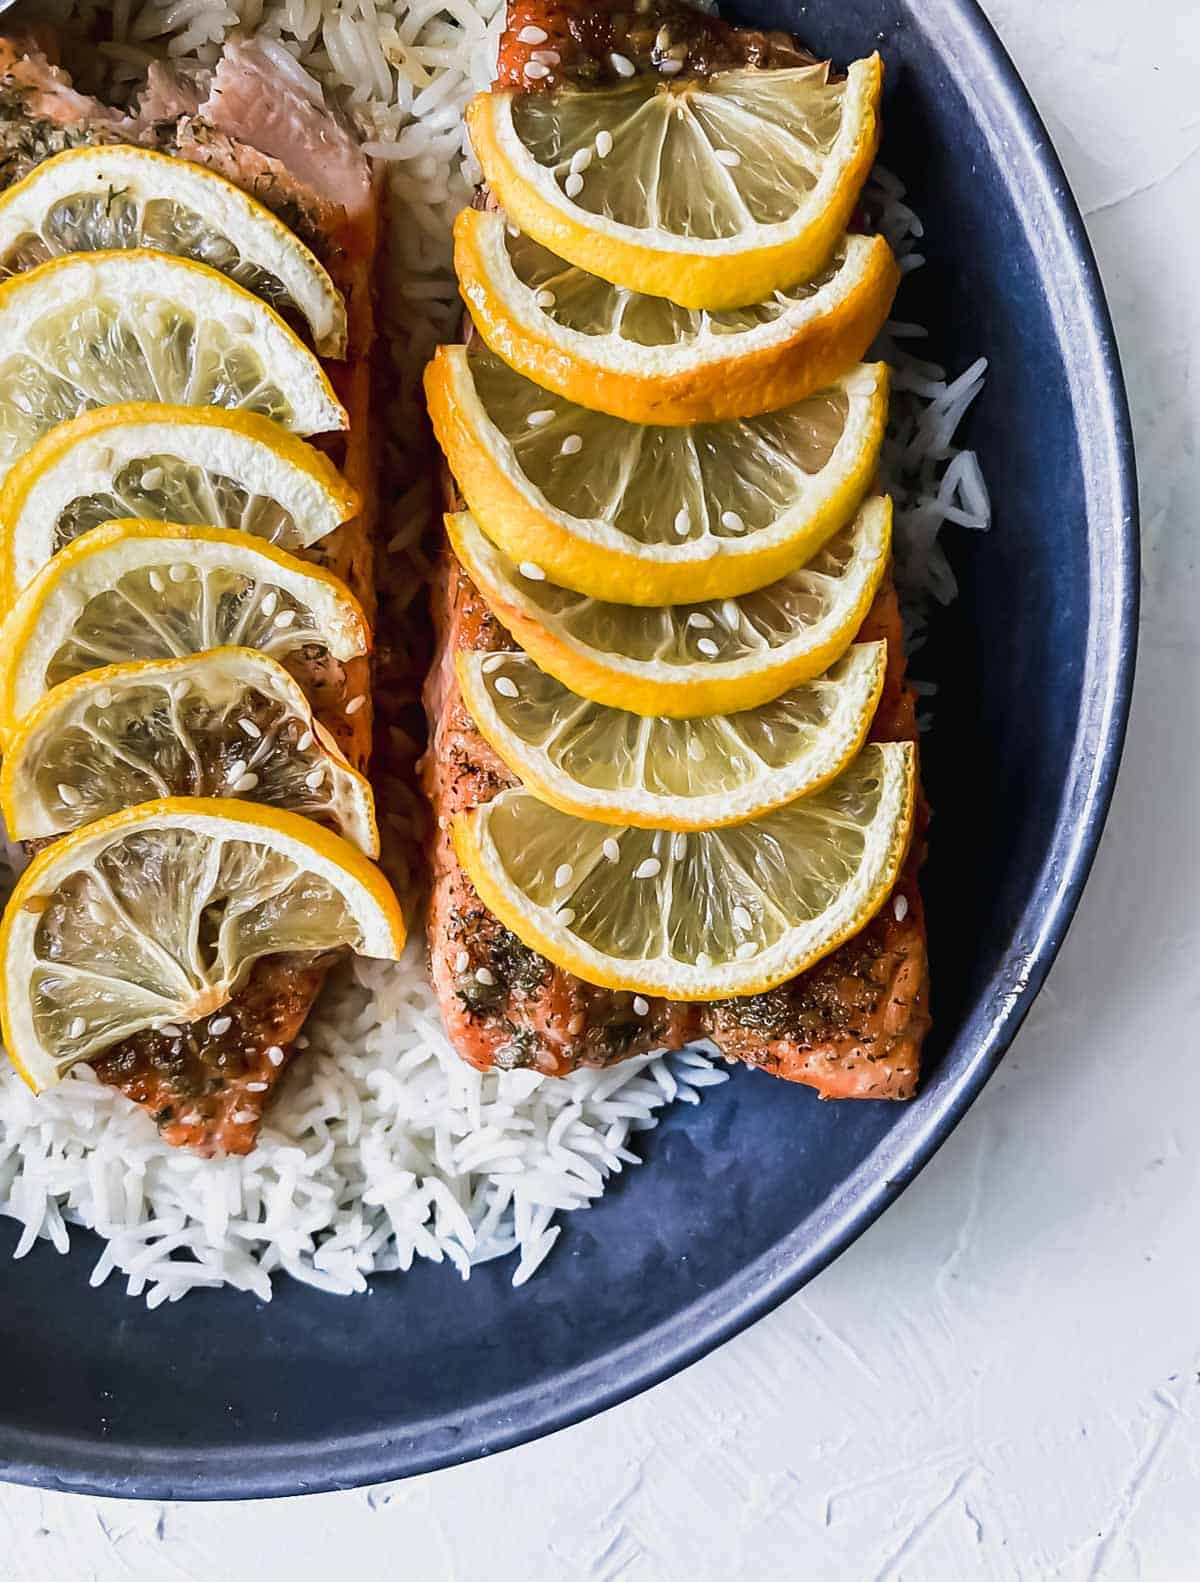 teriyaki salmon with lemon slices on top on a bed of rice in a black bowl.